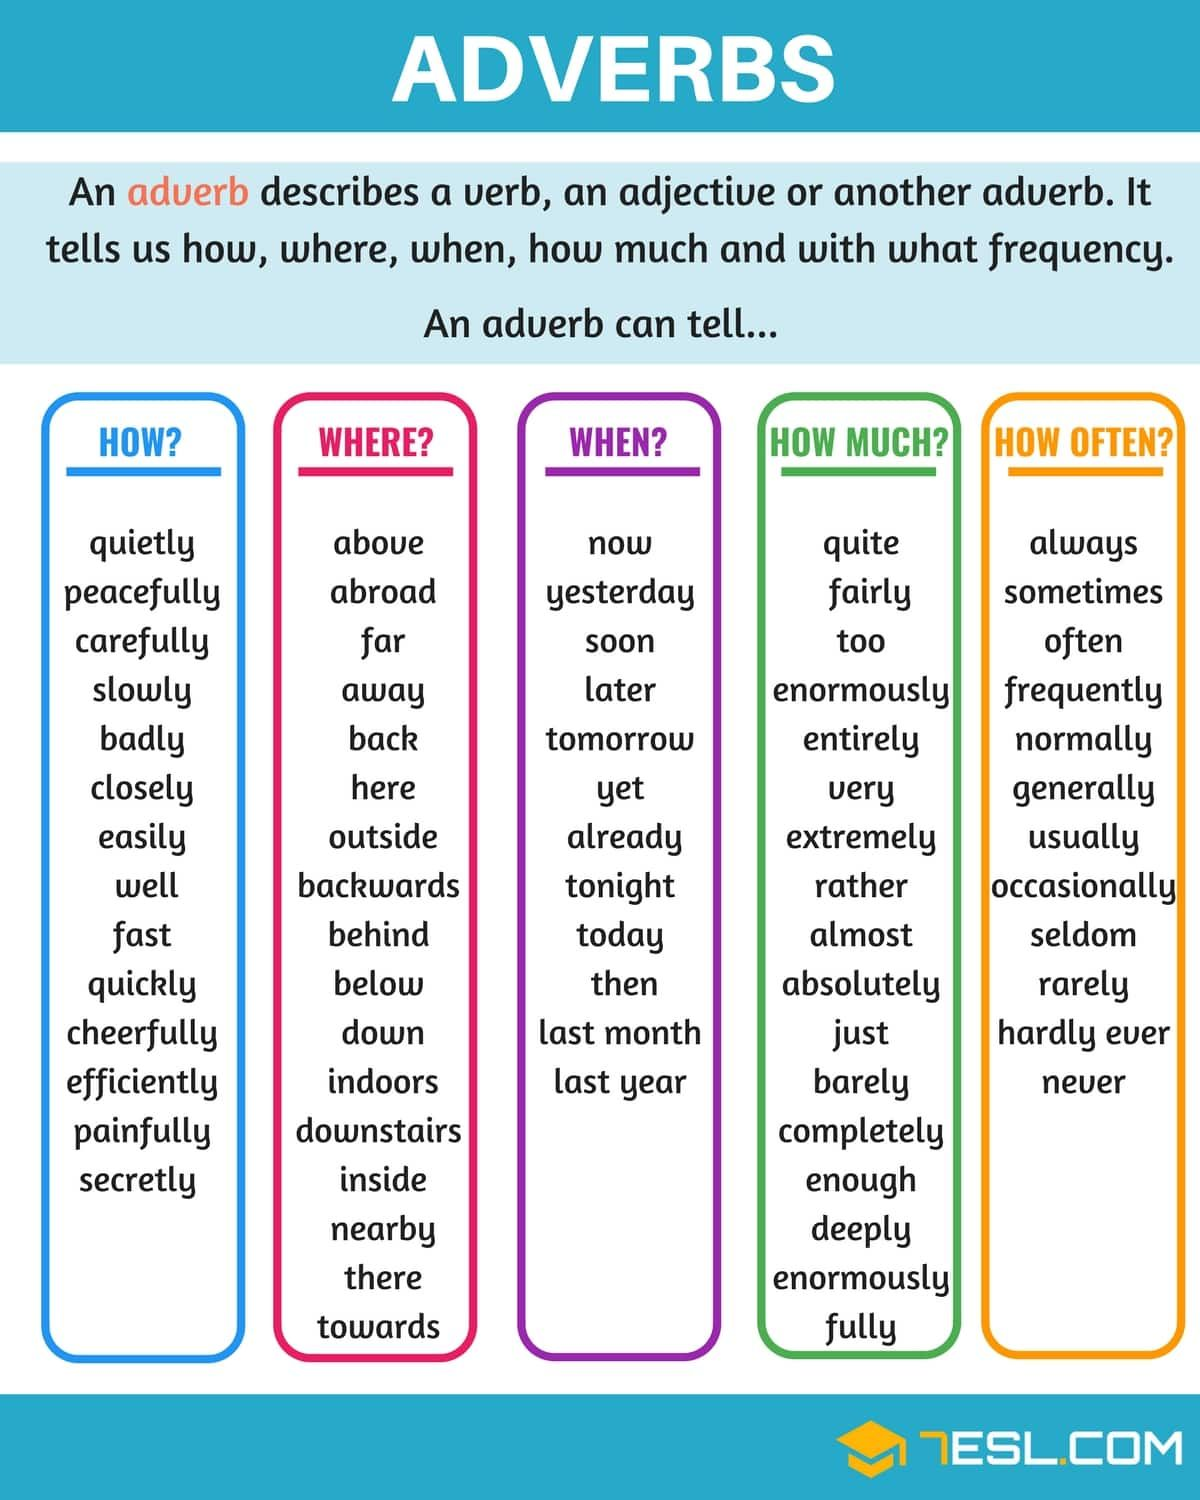 Adverb A Super Simple Guide To Adverbs With Examples 7esl Learn English Grammar English Grammar Teaching English Grammar [ 1500 x 1200 Pixel ]